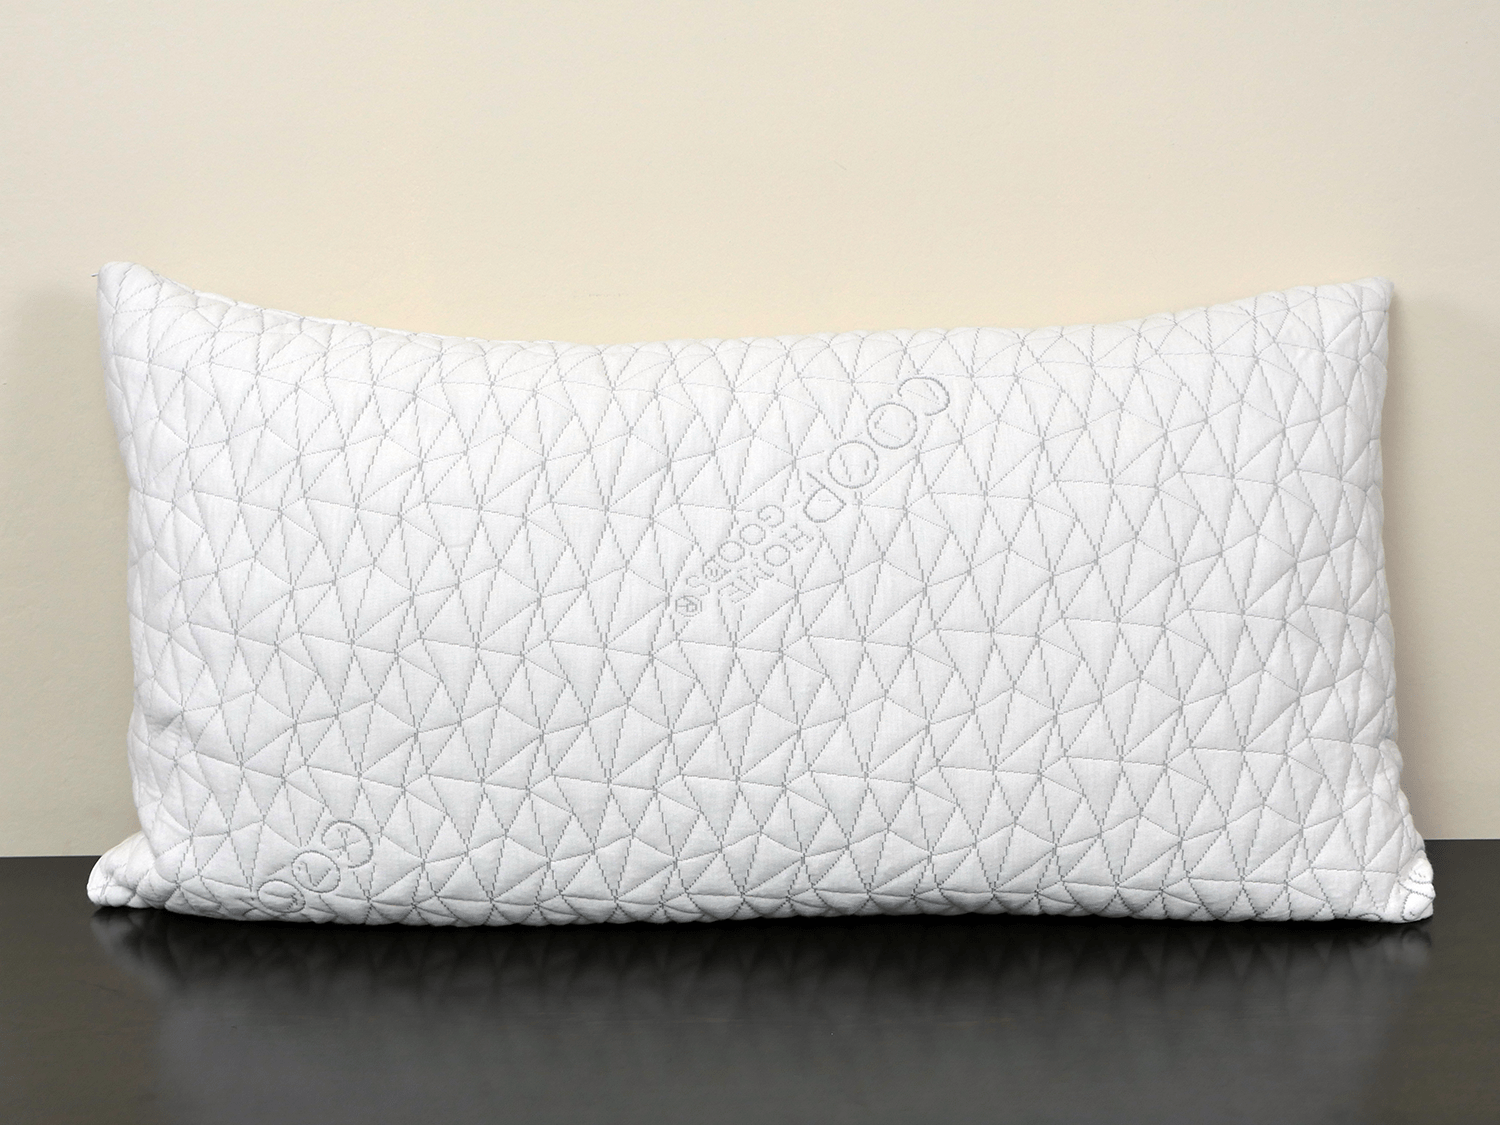 coop-home-goods-pillow-review Coop Home Goods Memory Foam Pillow Review